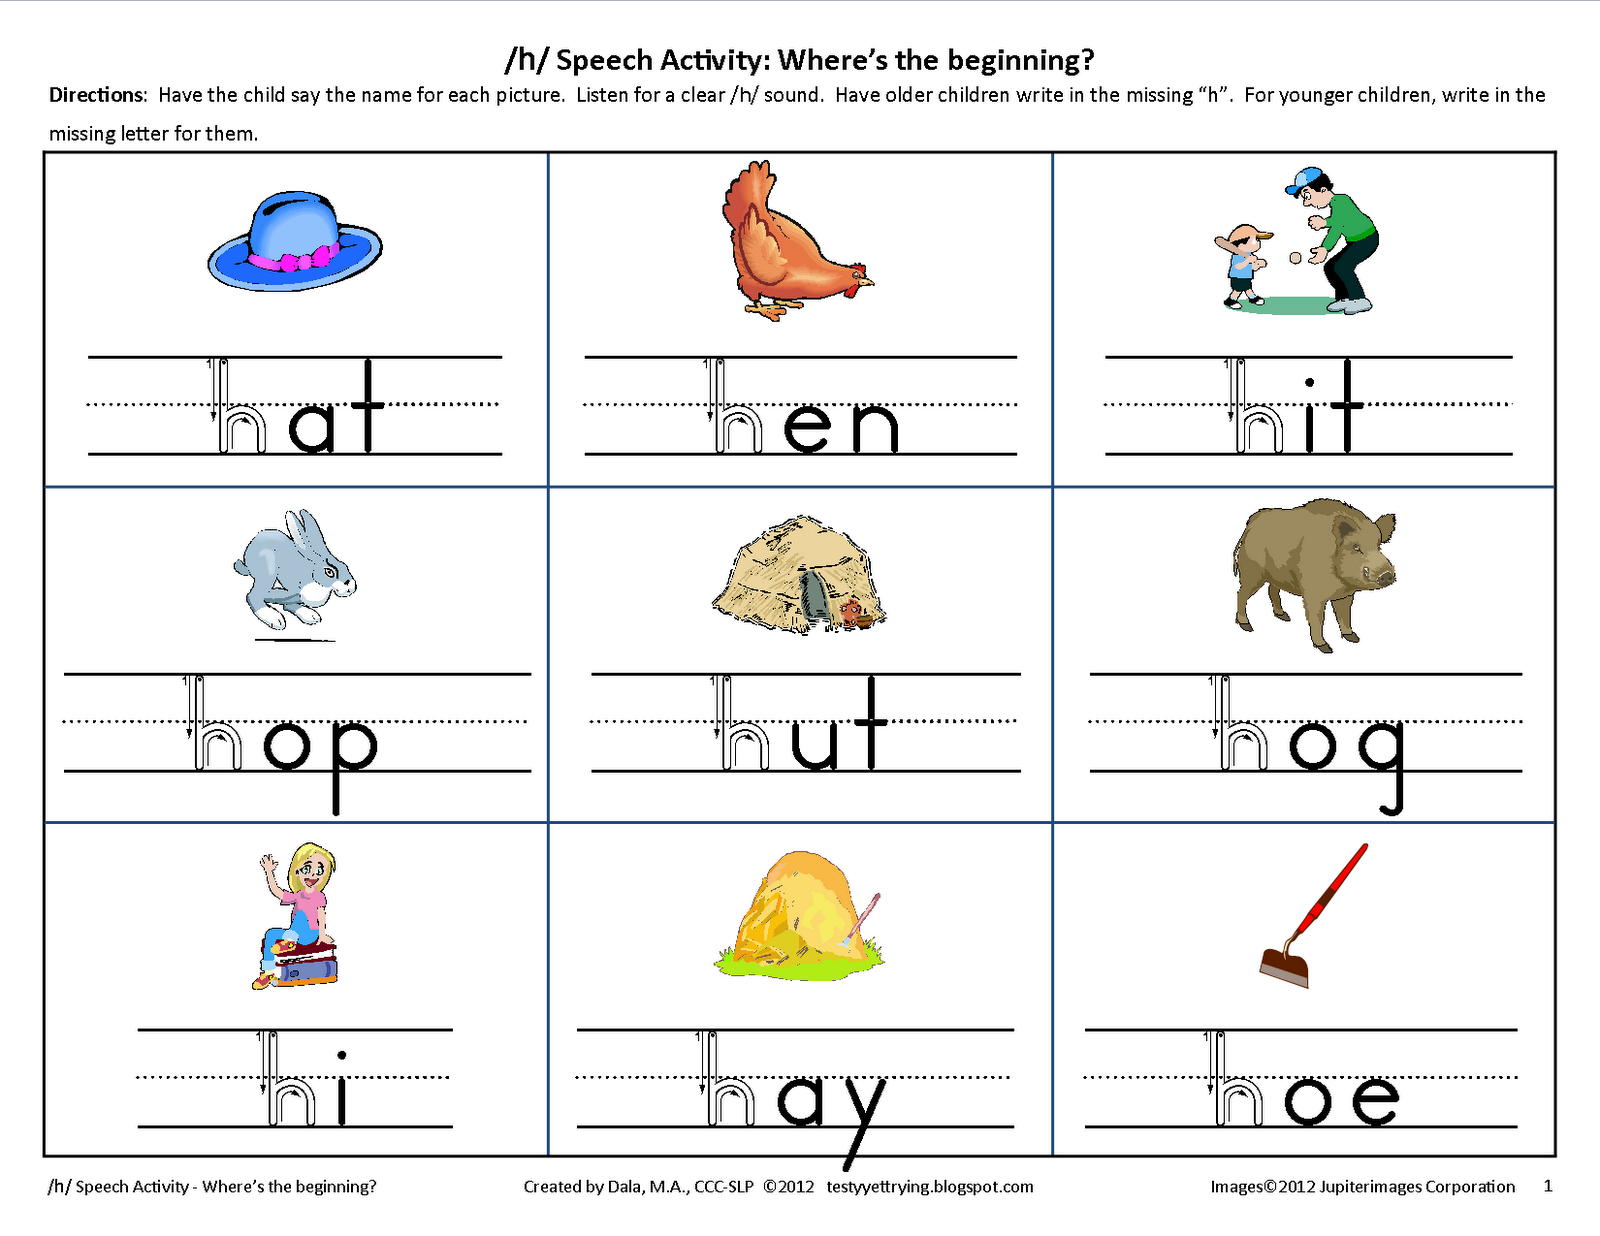 Aldiablosus  Inspiring Testy Yet Trying Initial H Speech Worksheet With Excellent Make Classroom Teachers Happy Reinforce Phonics And Handwriting And Practice Speech All At The Same Time With Beautiful Worksheets Shapes Also Worksheets Animals In Addition Noun In A Sentence Worksheet And Inverse Variation Worksheets As Well As Worksheets Probability Additionally Transitional Devices Worksheet From Testyyettryingblogspotcom With Aldiablosus  Excellent Testy Yet Trying Initial H Speech Worksheet With Beautiful Make Classroom Teachers Happy Reinforce Phonics And Handwriting And Practice Speech All At The Same Time And Inspiring Worksheets Shapes Also Worksheets Animals In Addition Noun In A Sentence Worksheet From Testyyettryingblogspotcom